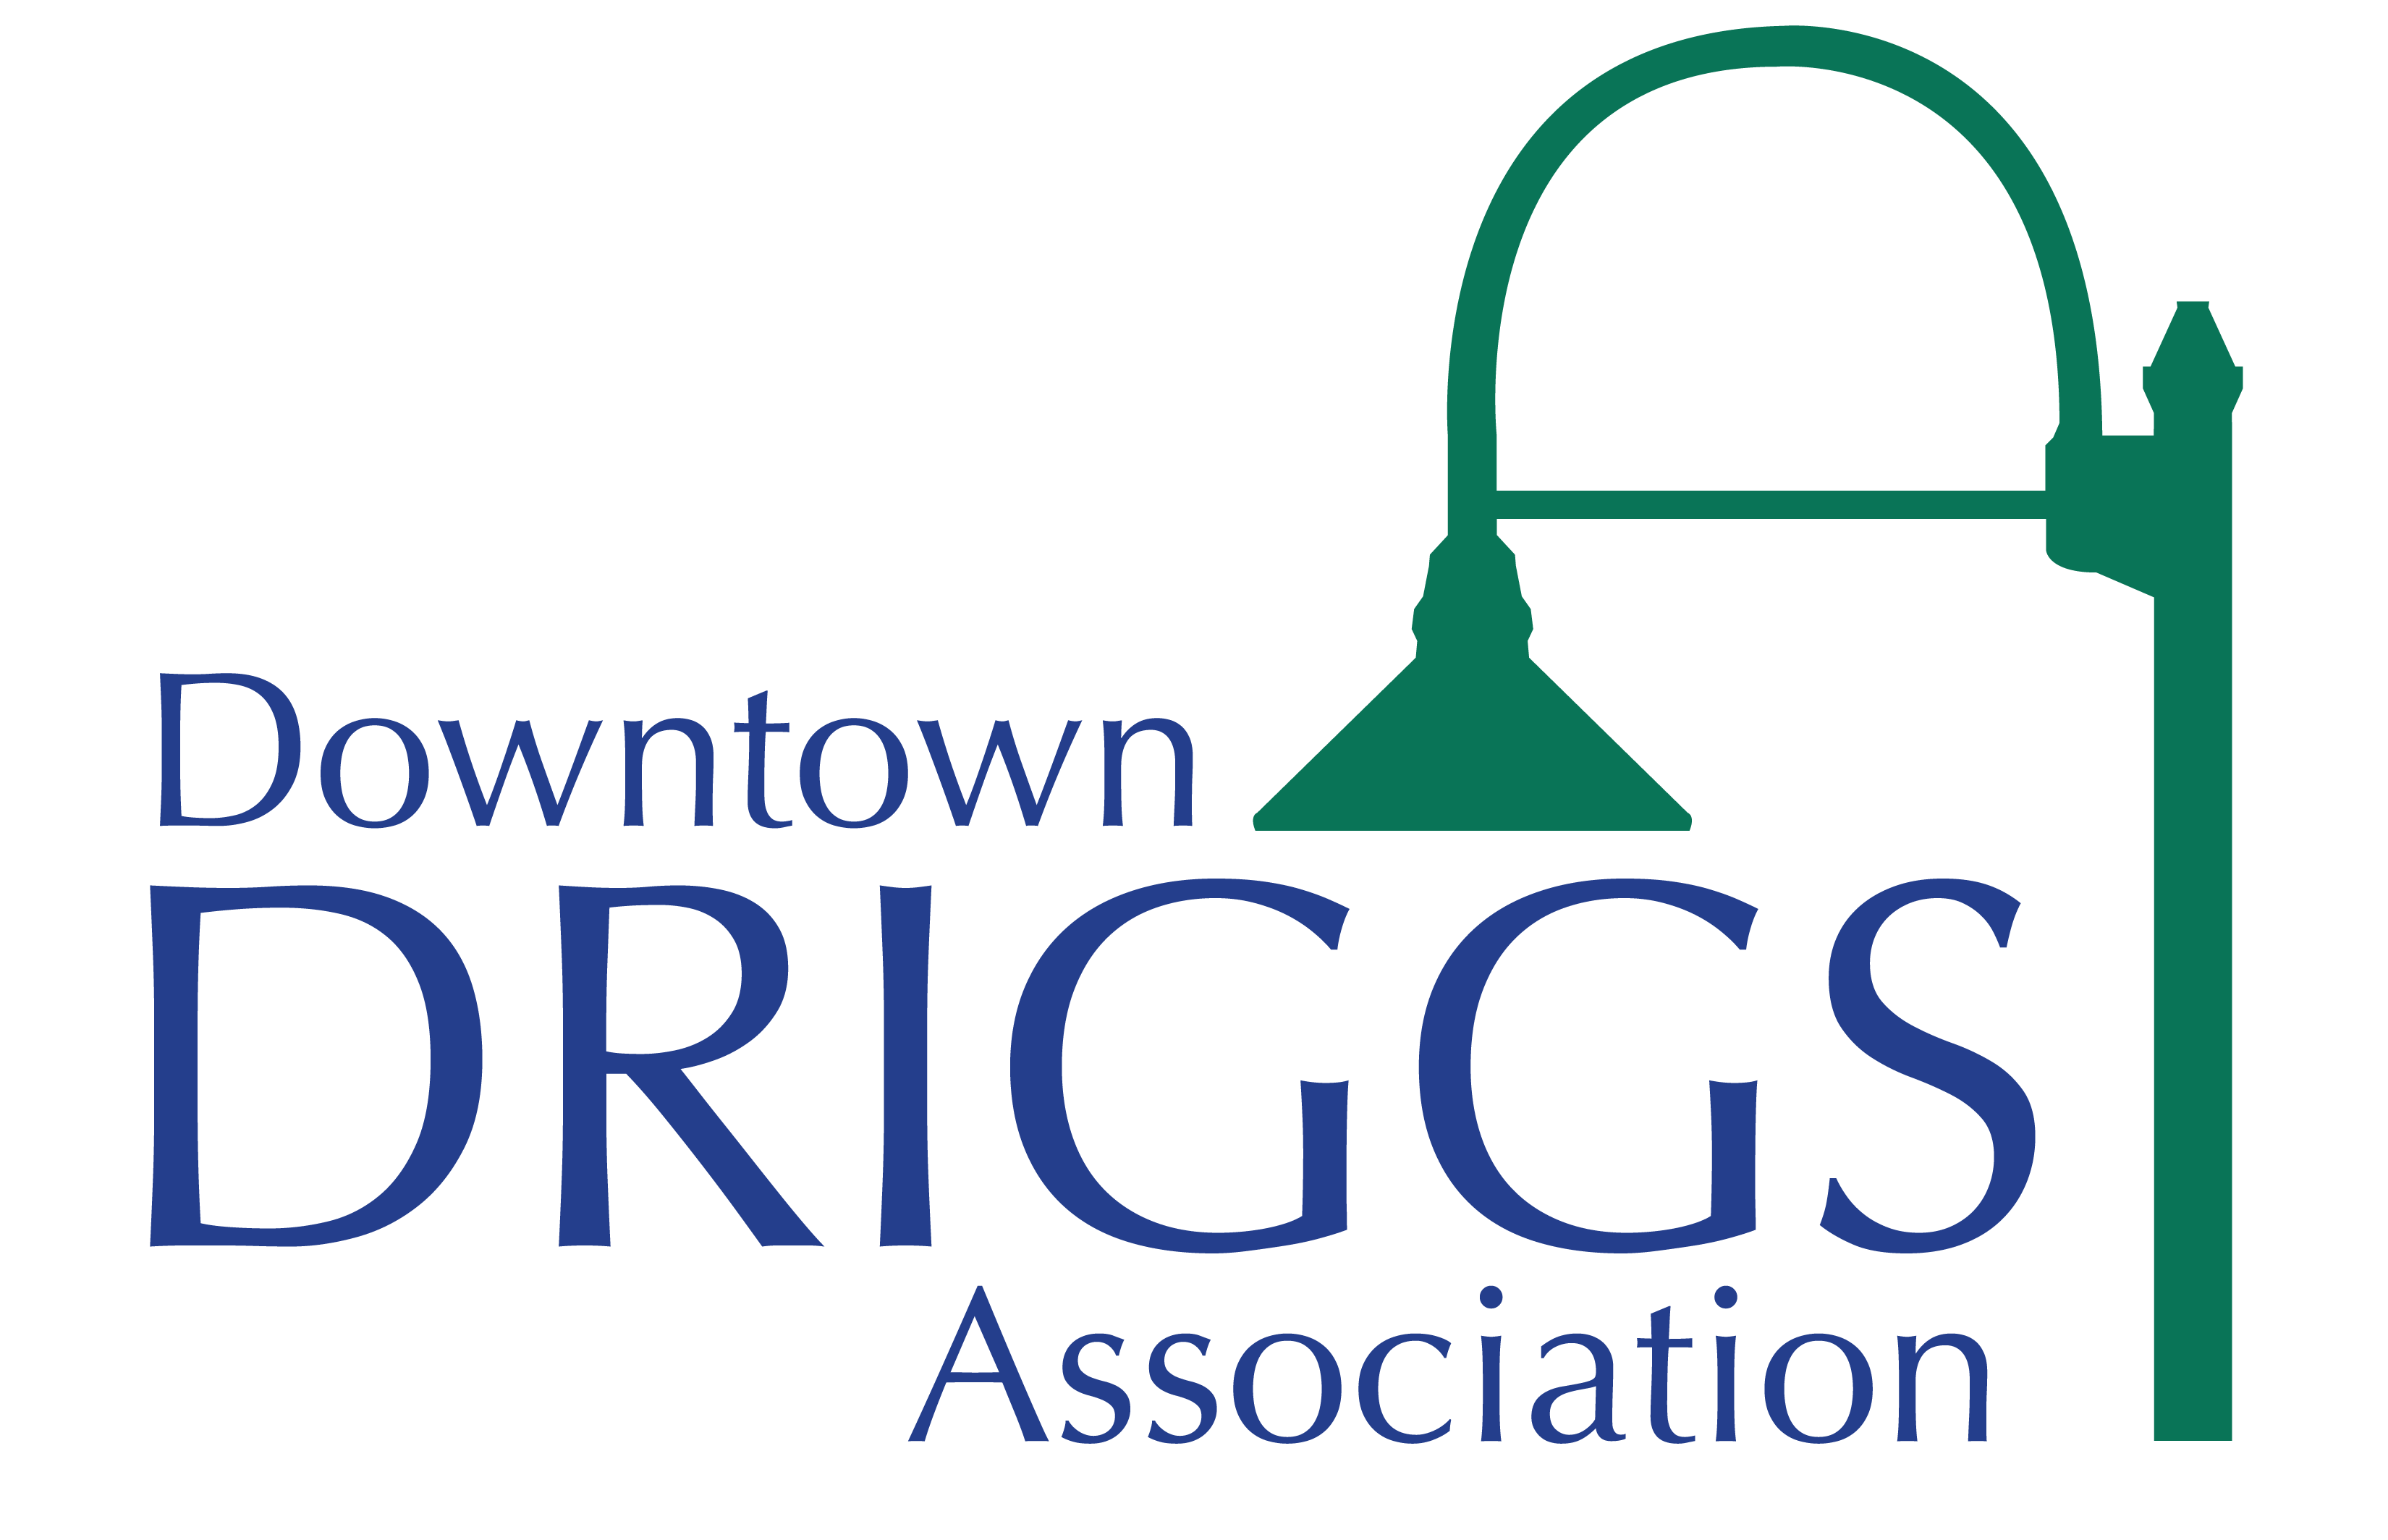 Downtown Driggs Association